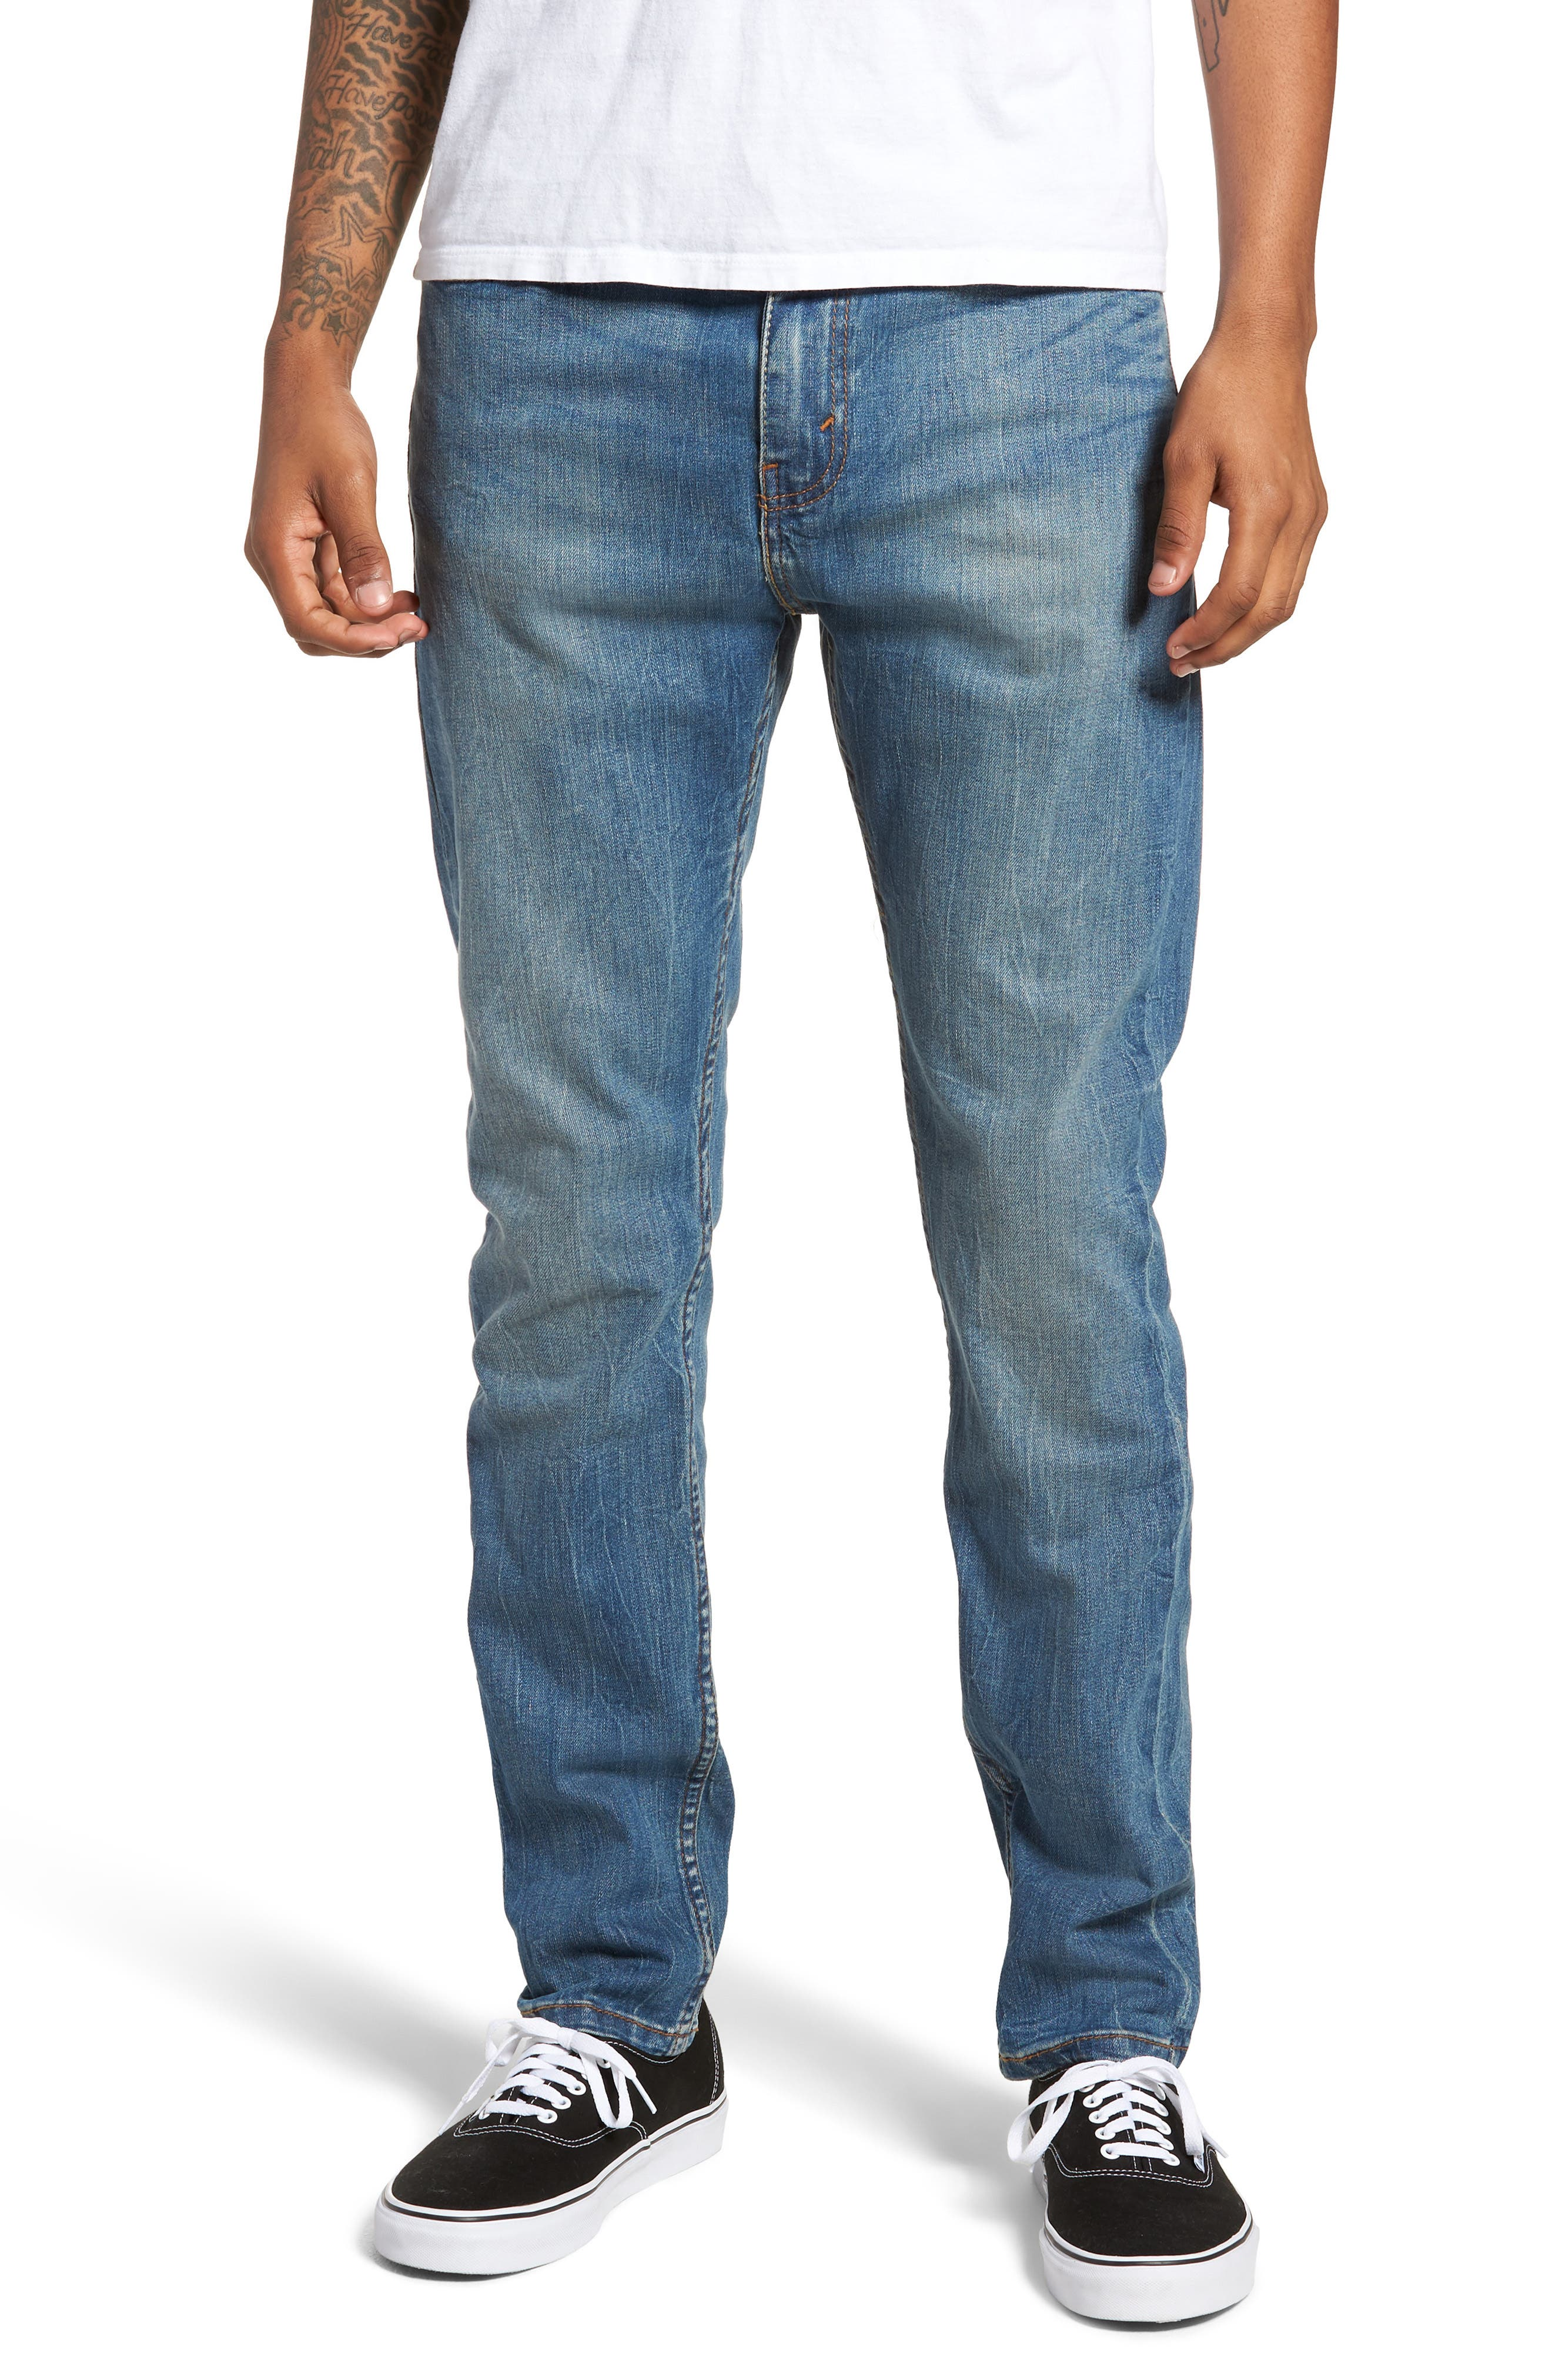 510<sup>™</sup> Skinny Fit Jeans,                             Main thumbnail 1, color,                             427